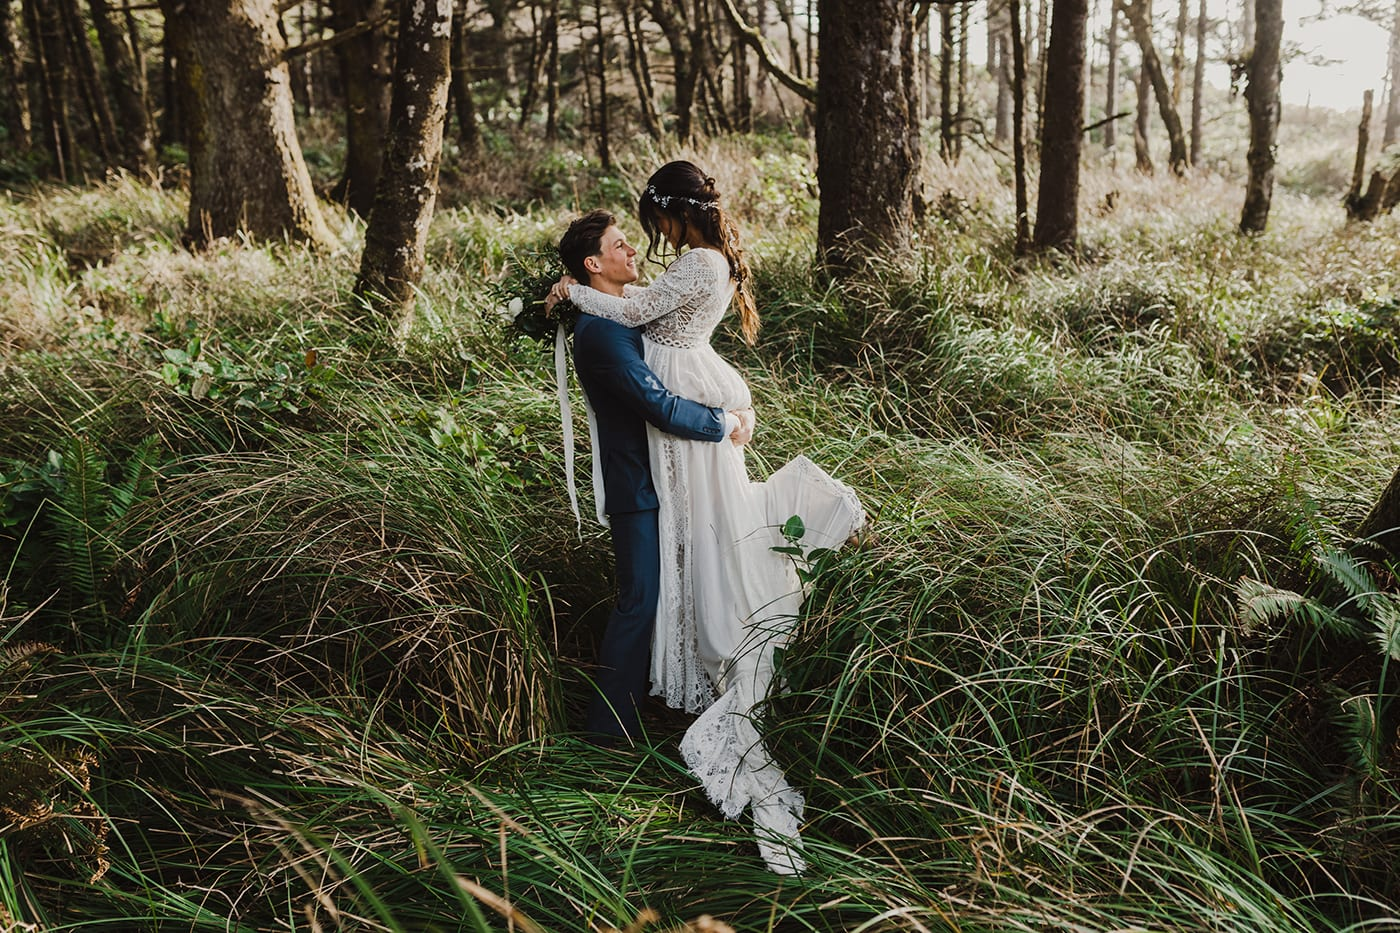 Groom in blue suit picking up bride and kissing her in grass with trees